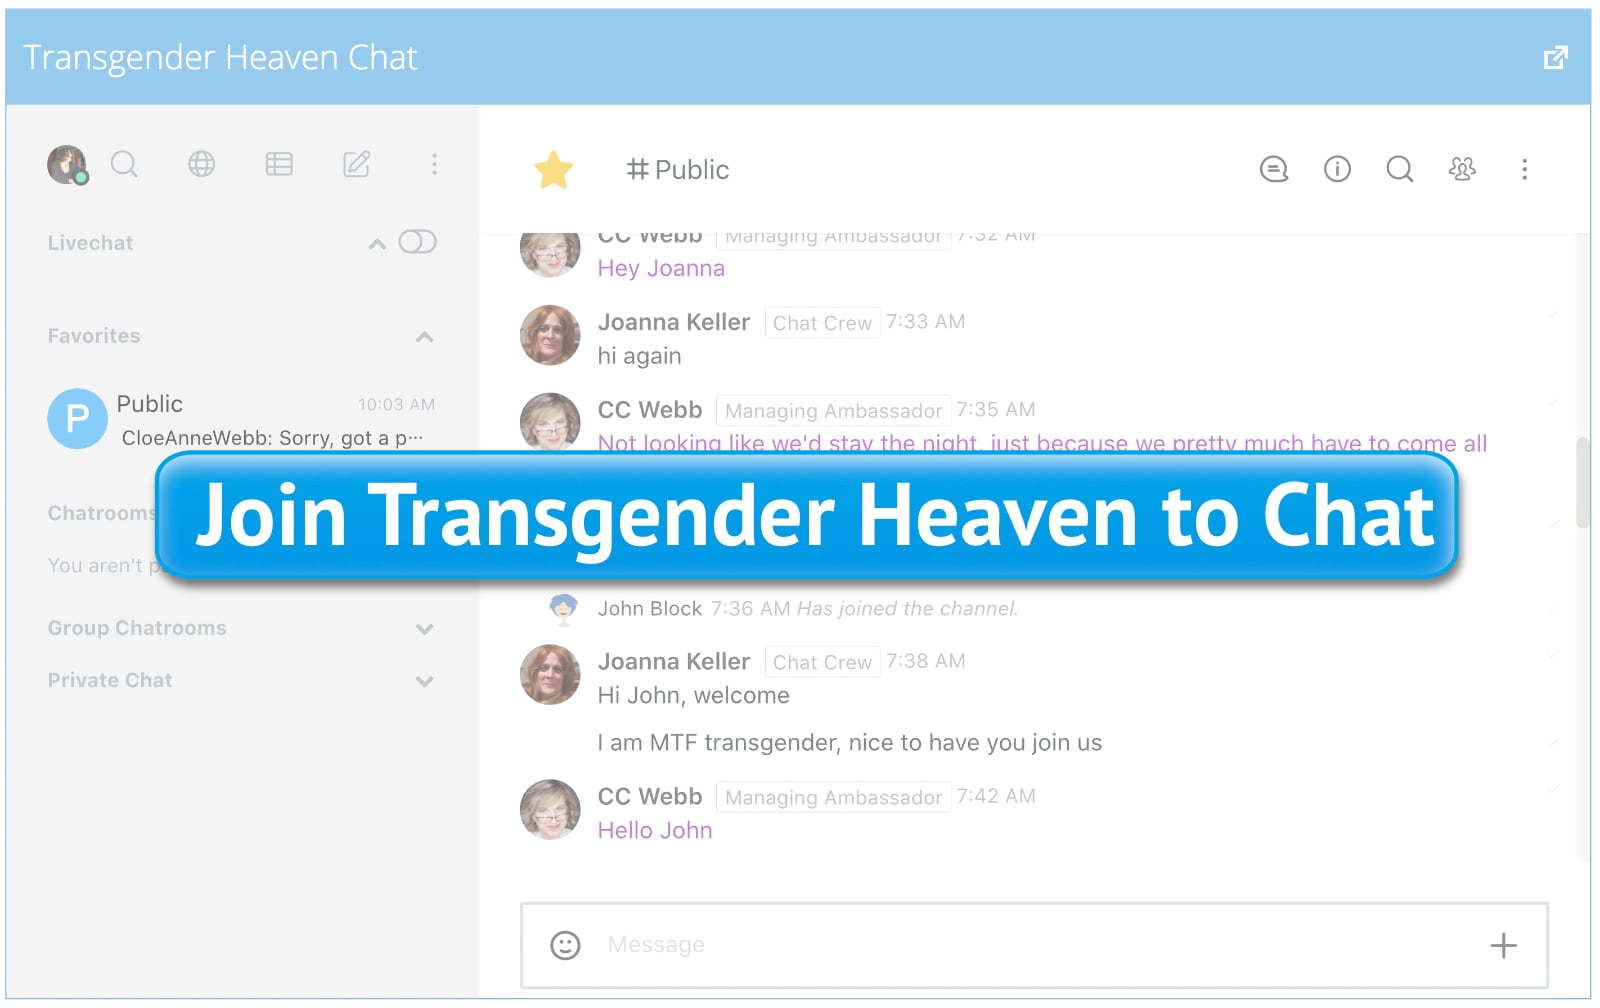 Join Transgender Heaven